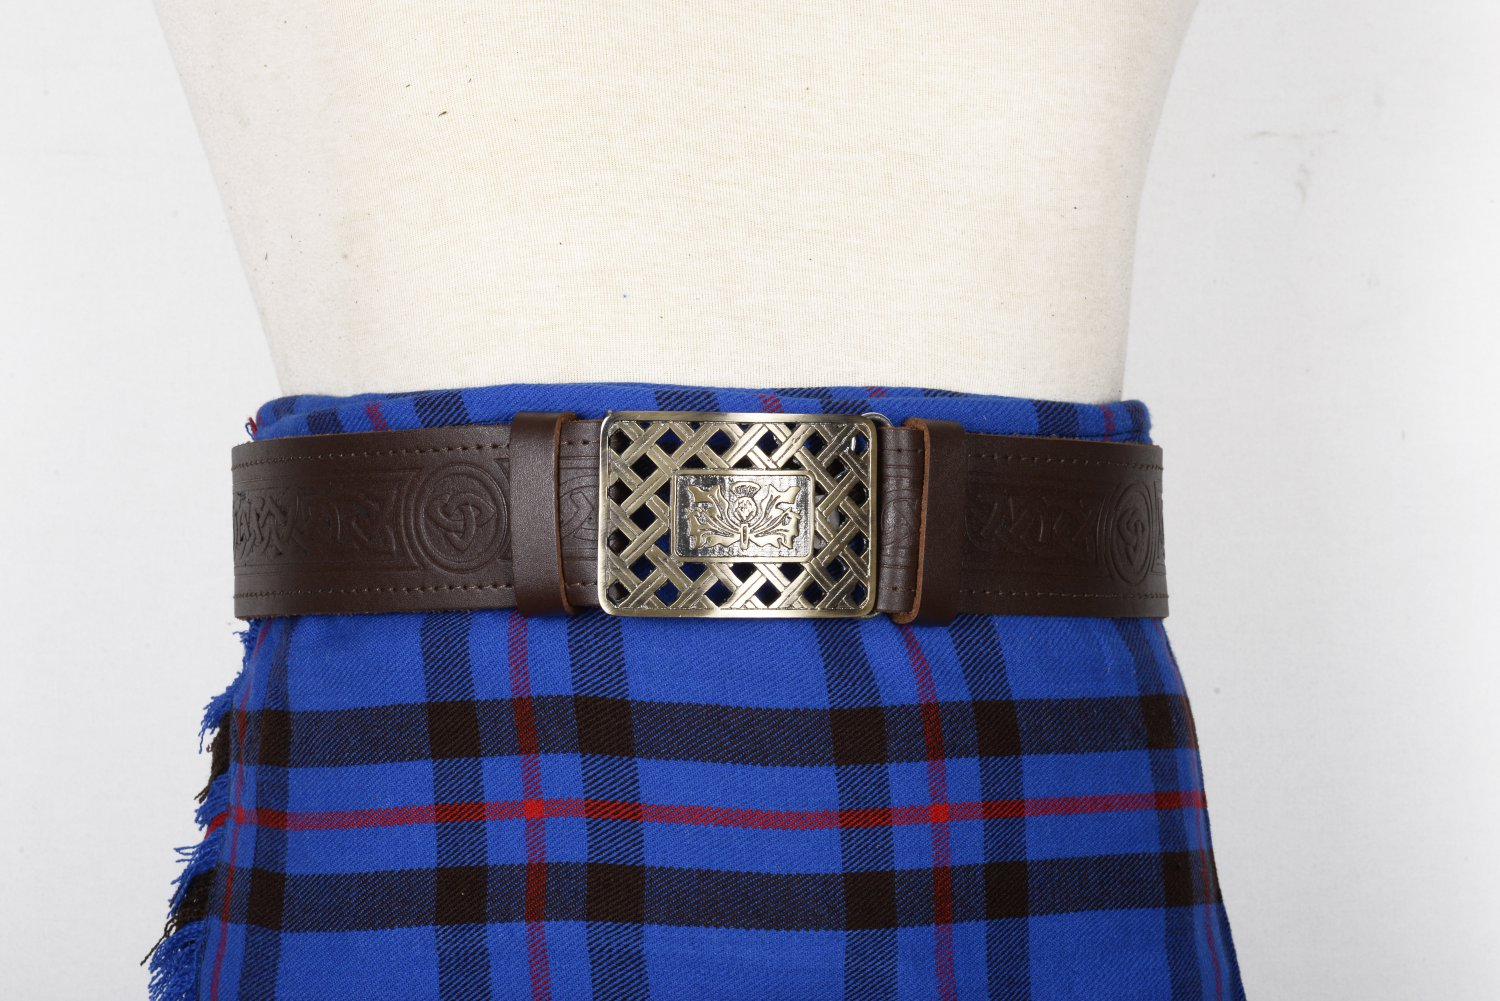 Traditional Scottish Leather Brown Kilt Belt -trinity Knot Celtic Embossing - Free Buckle Size 40